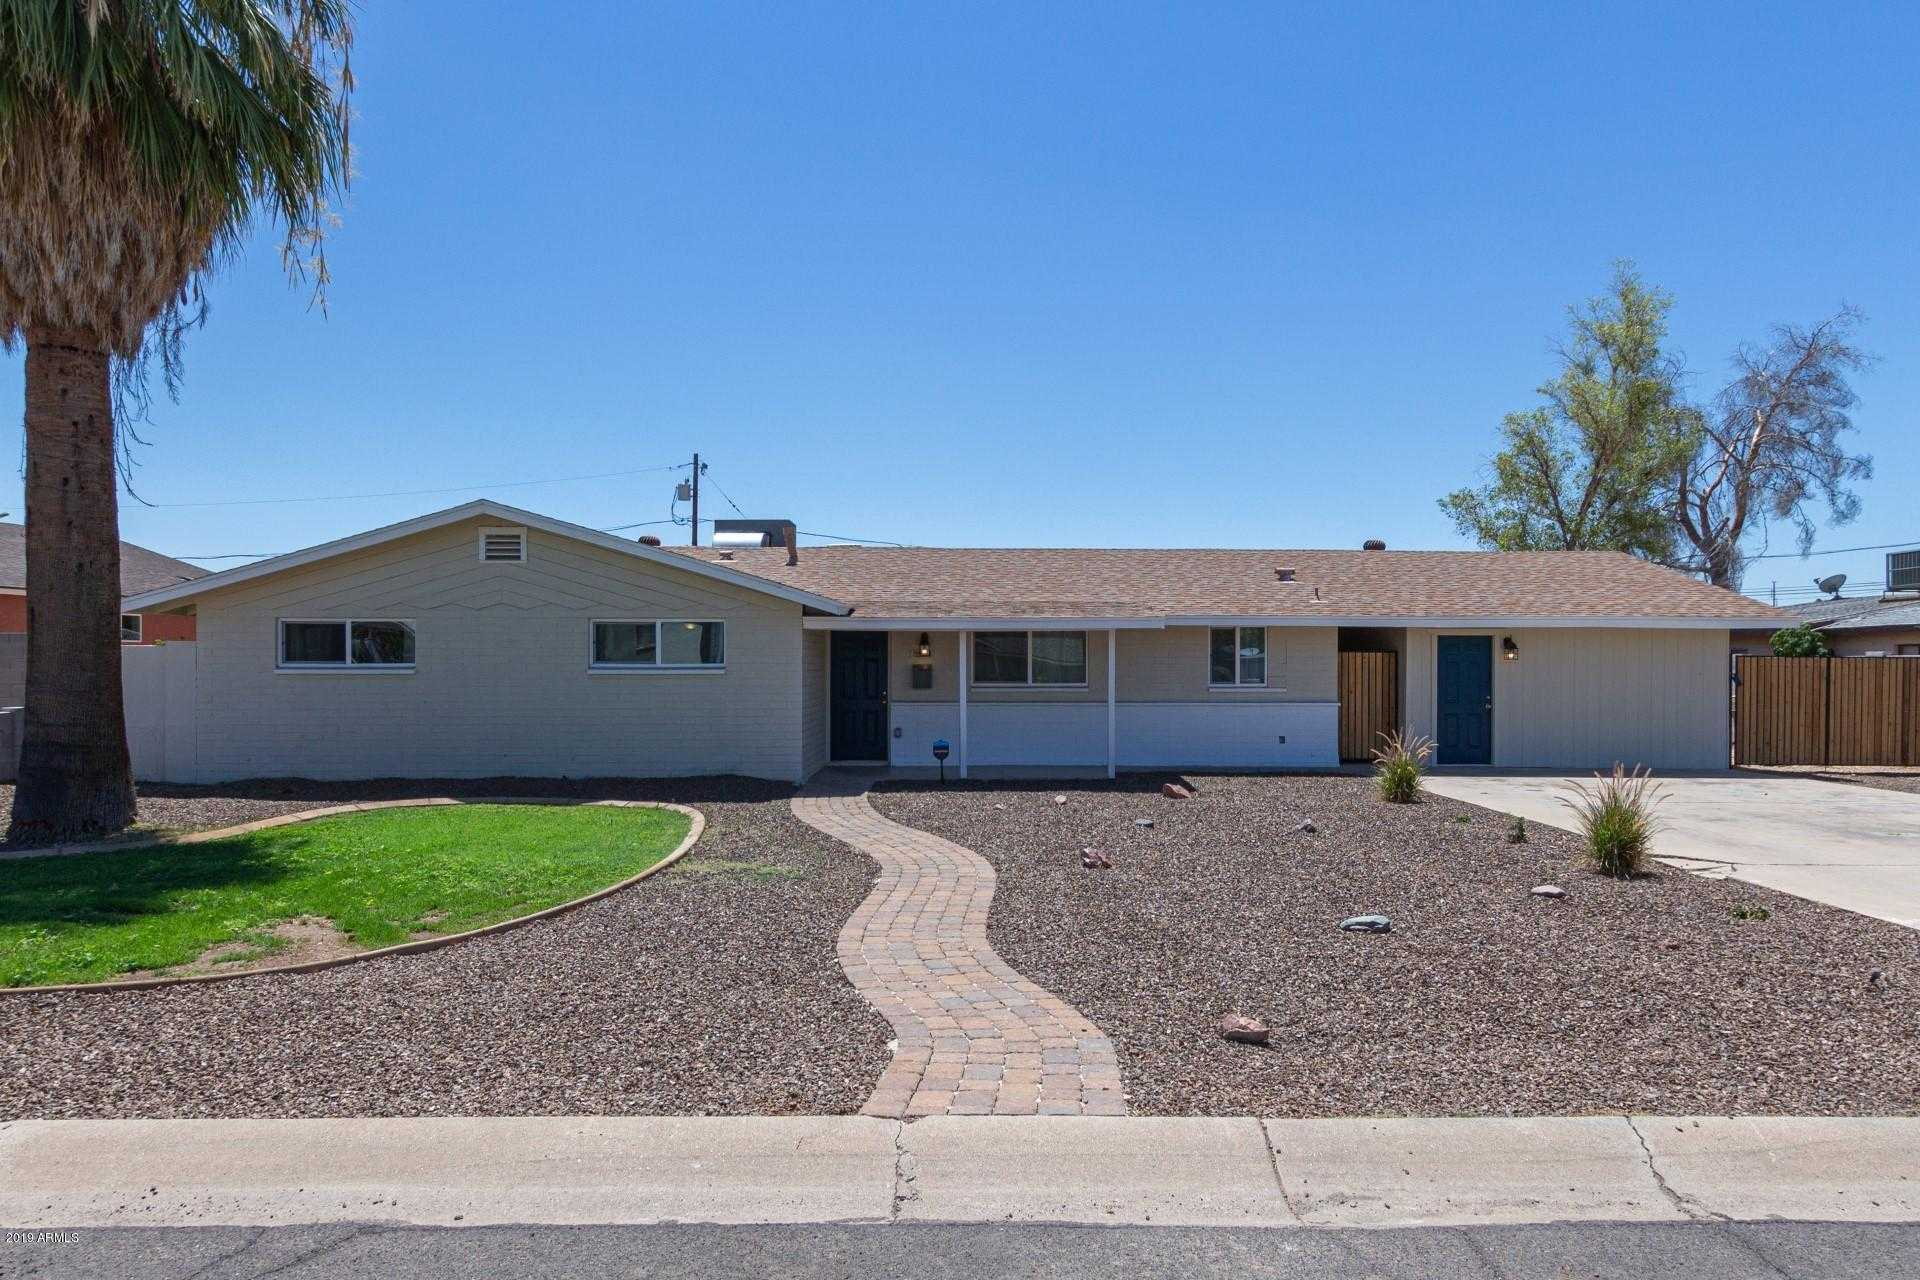 $299,900 - 5Br/2Ba - Home for Sale in Staley-acridge Tract, Glendale